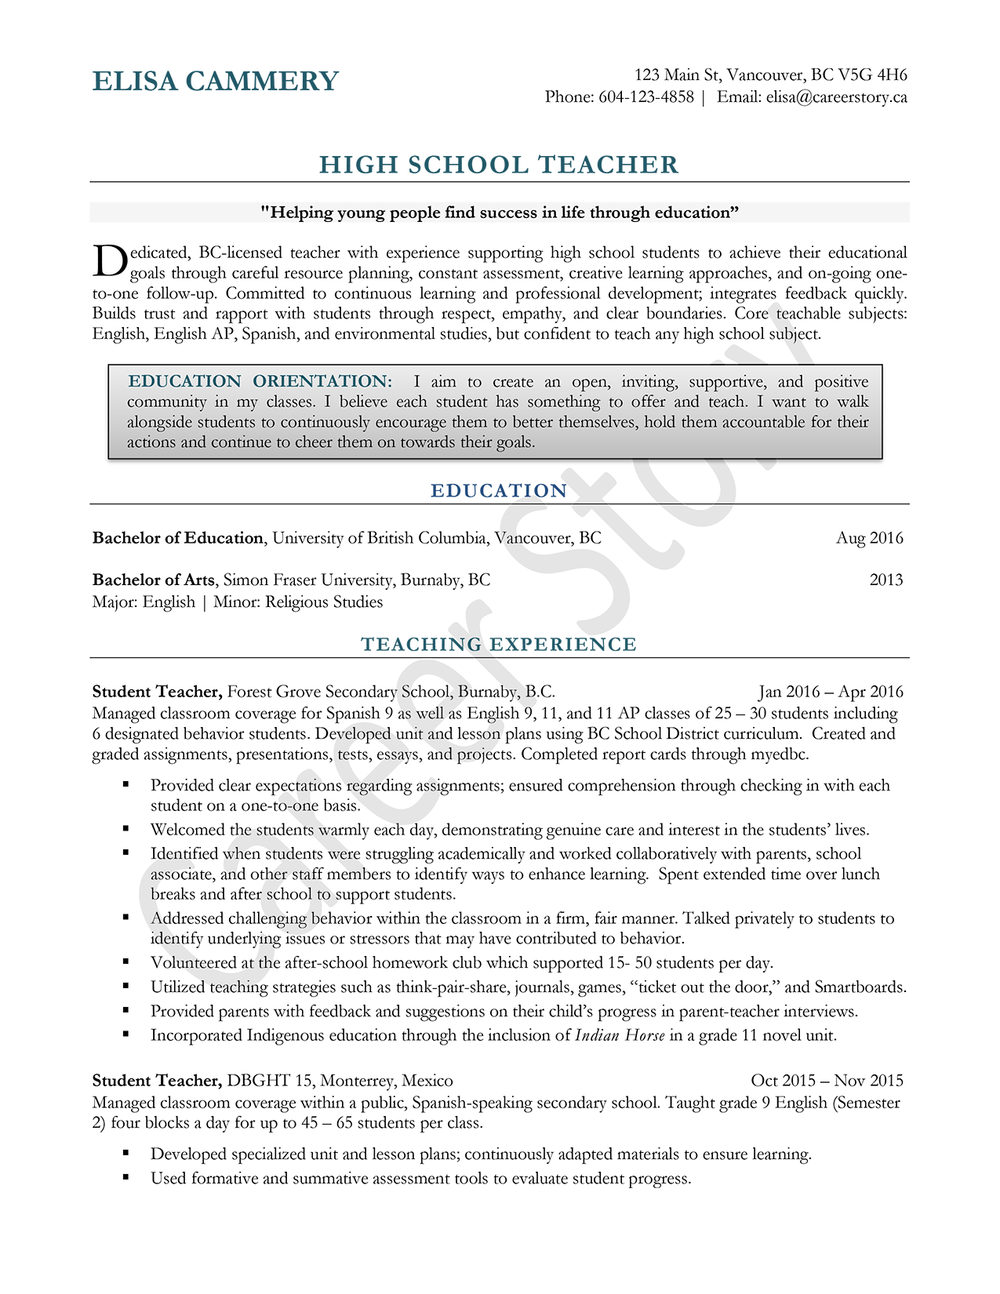 High School Teacher Sample Resume